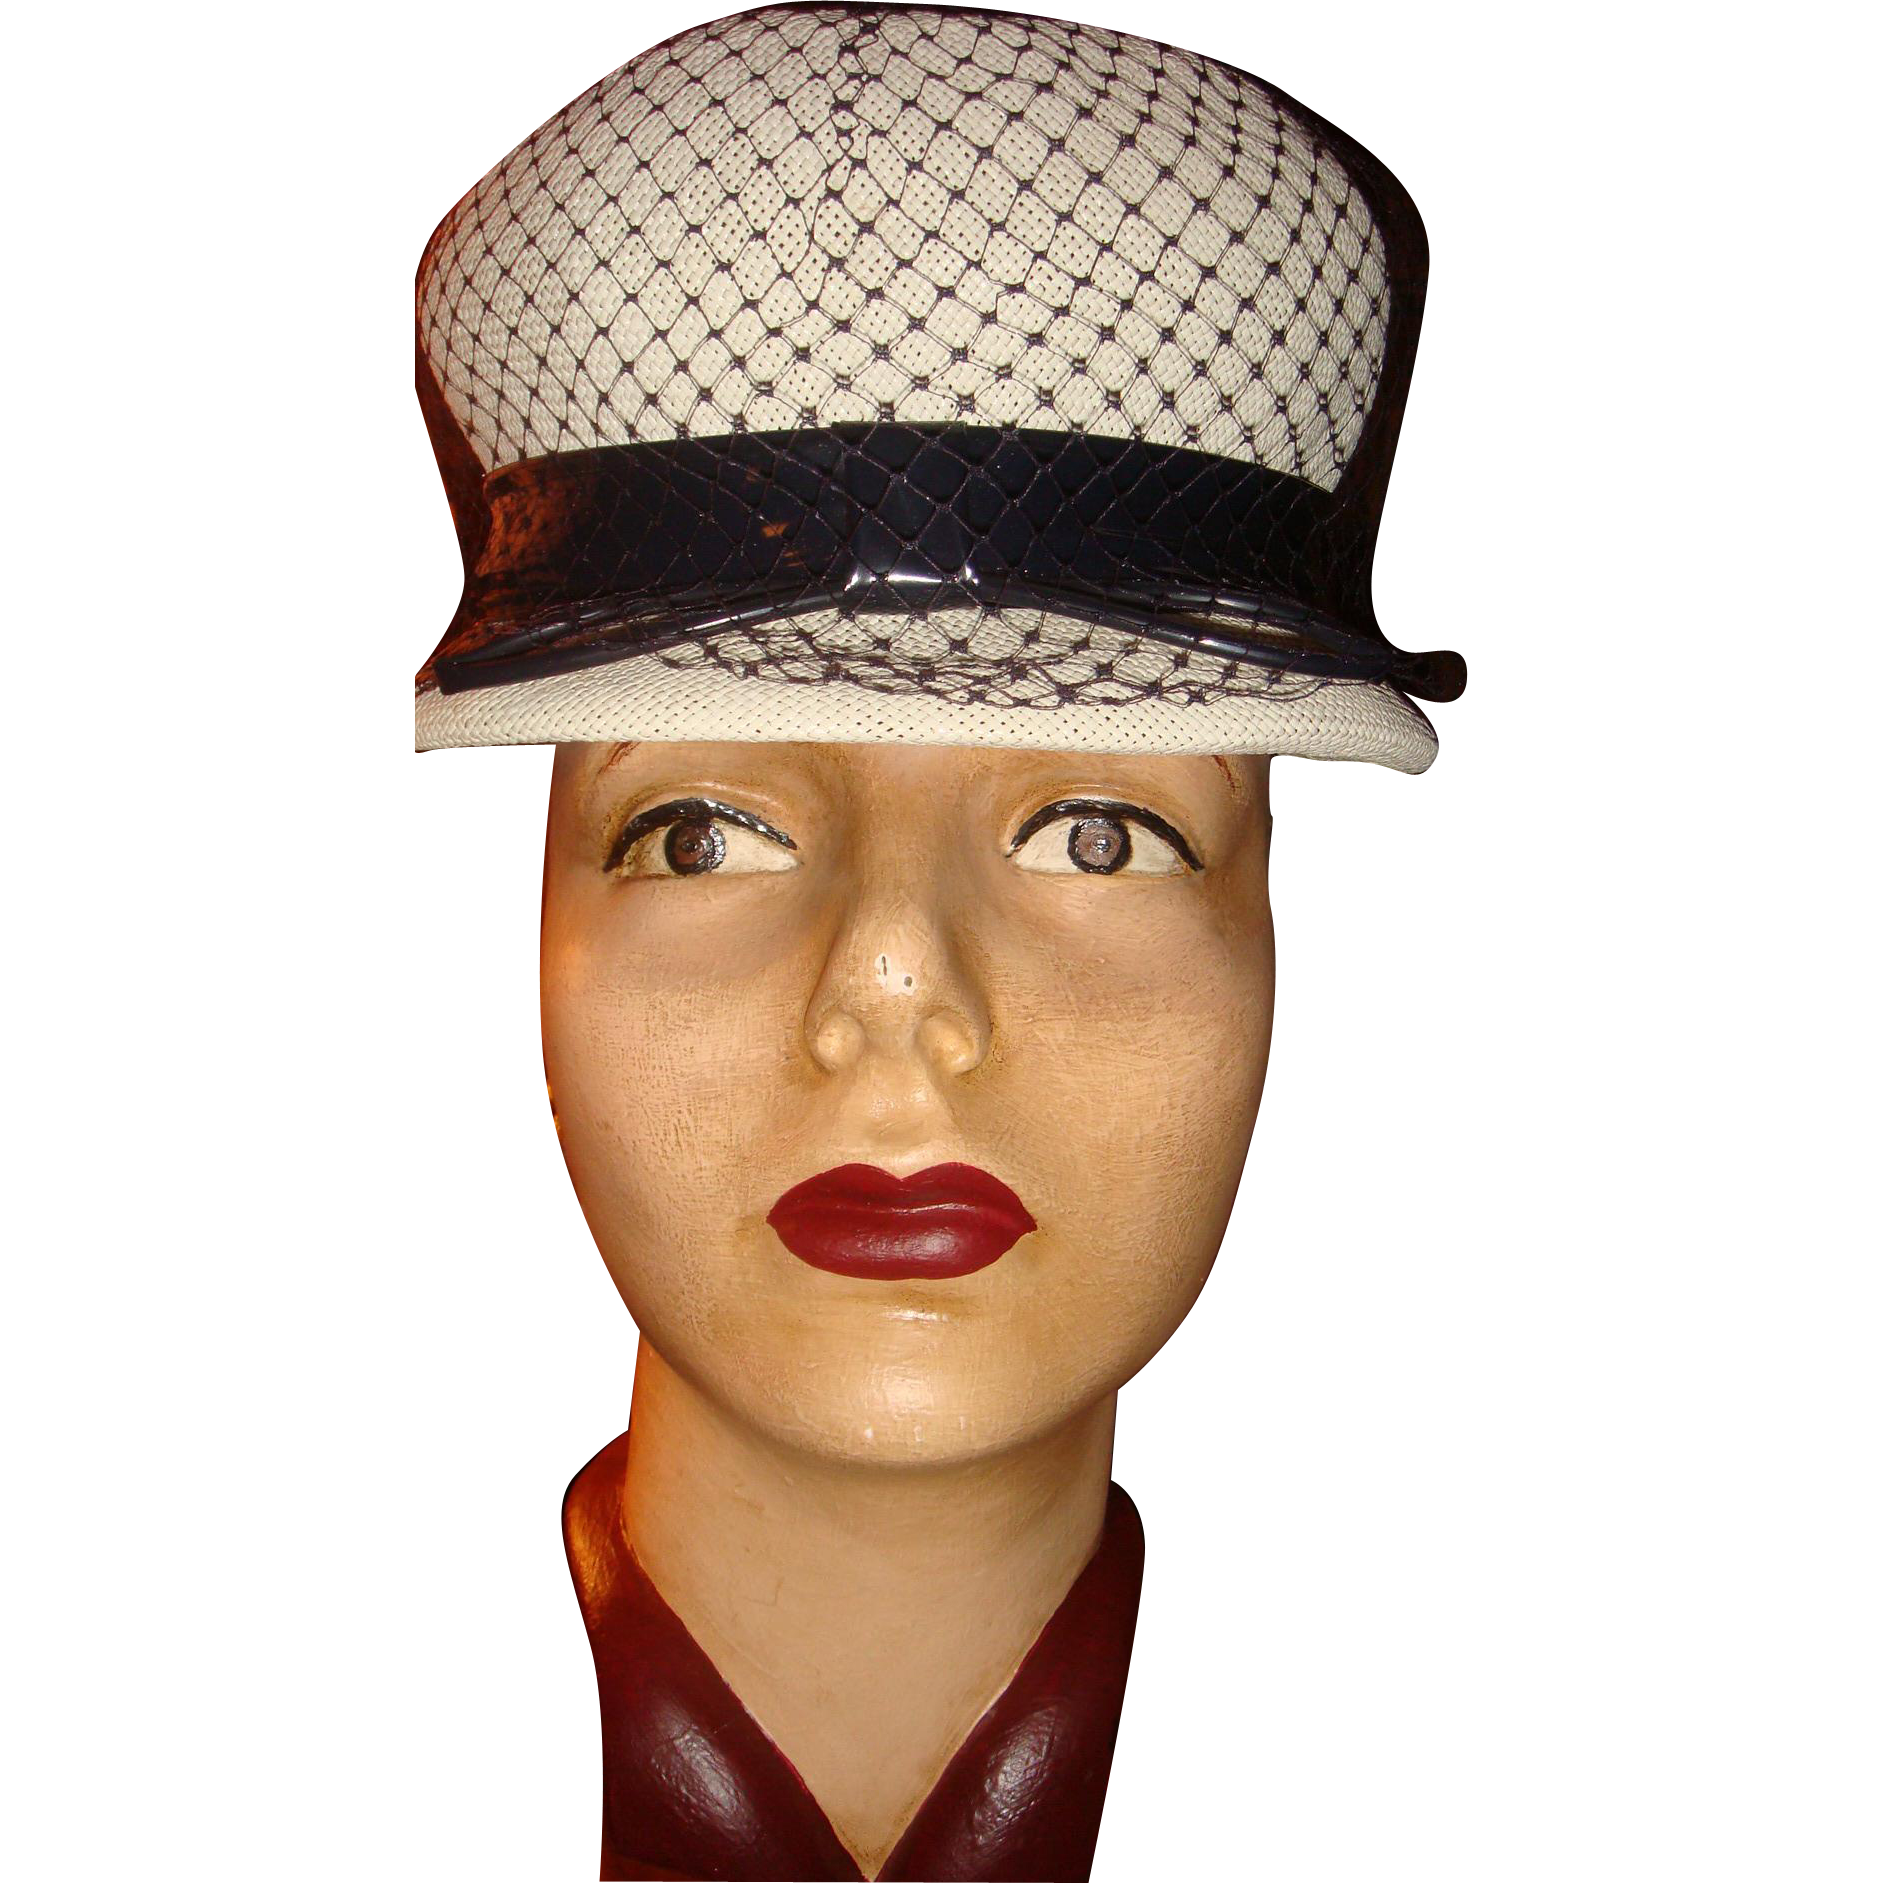 Navy White Spectator Cloche Hat Patent Leather, Diamond Design Netting, Tightly Woven Straw, U.S. Made